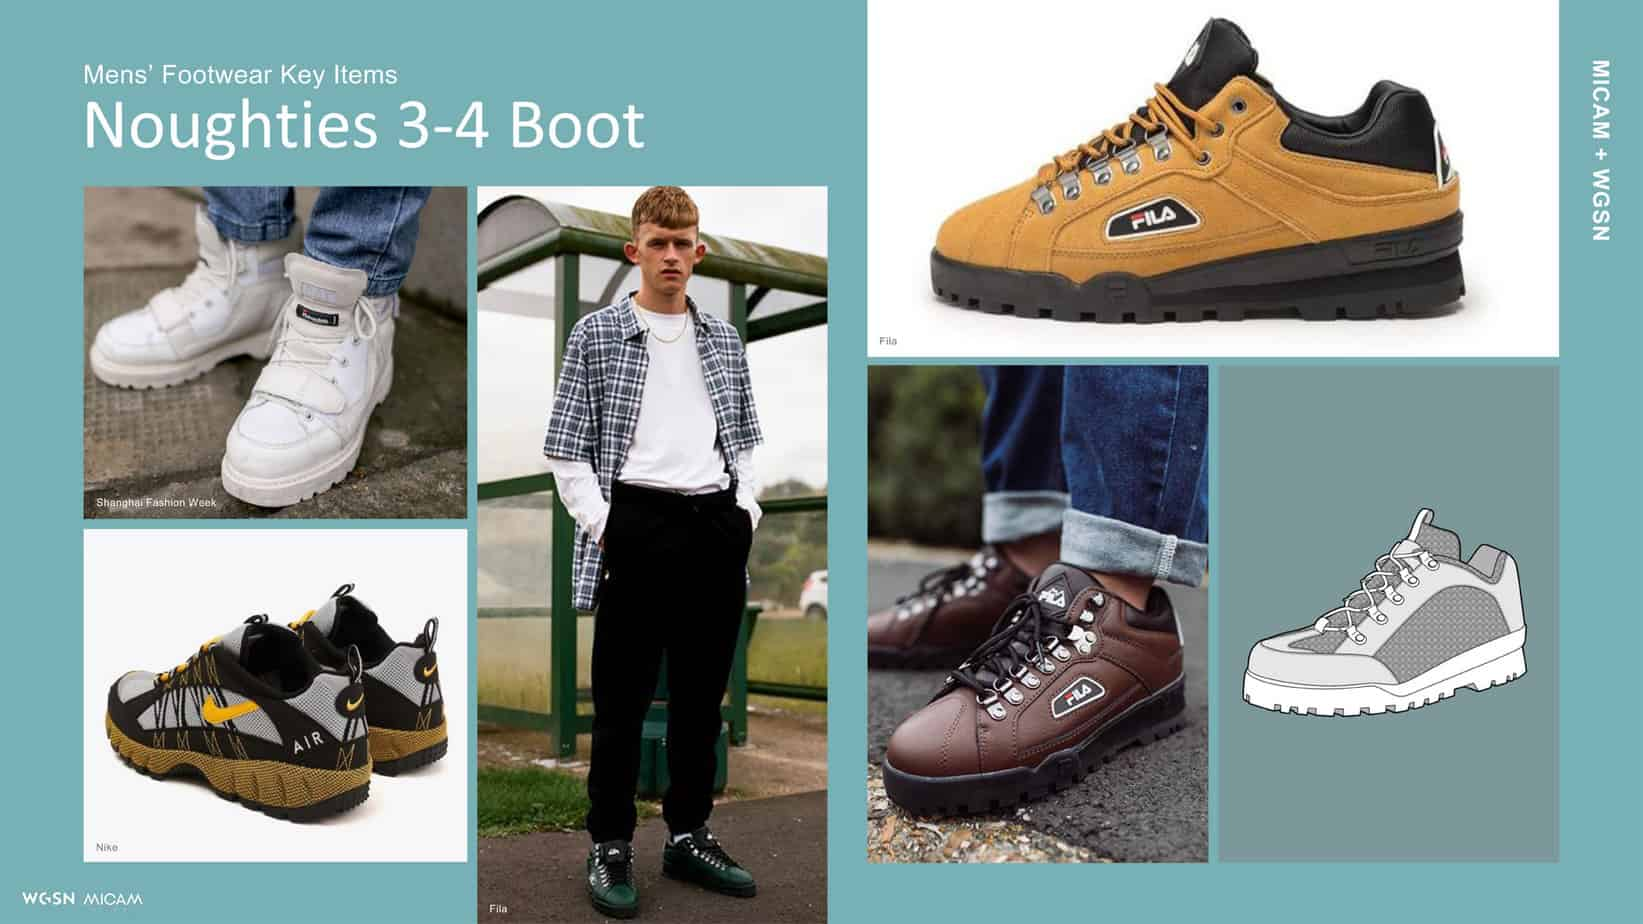 Mens' Footwear Key Items Noughties 3-4 Boot